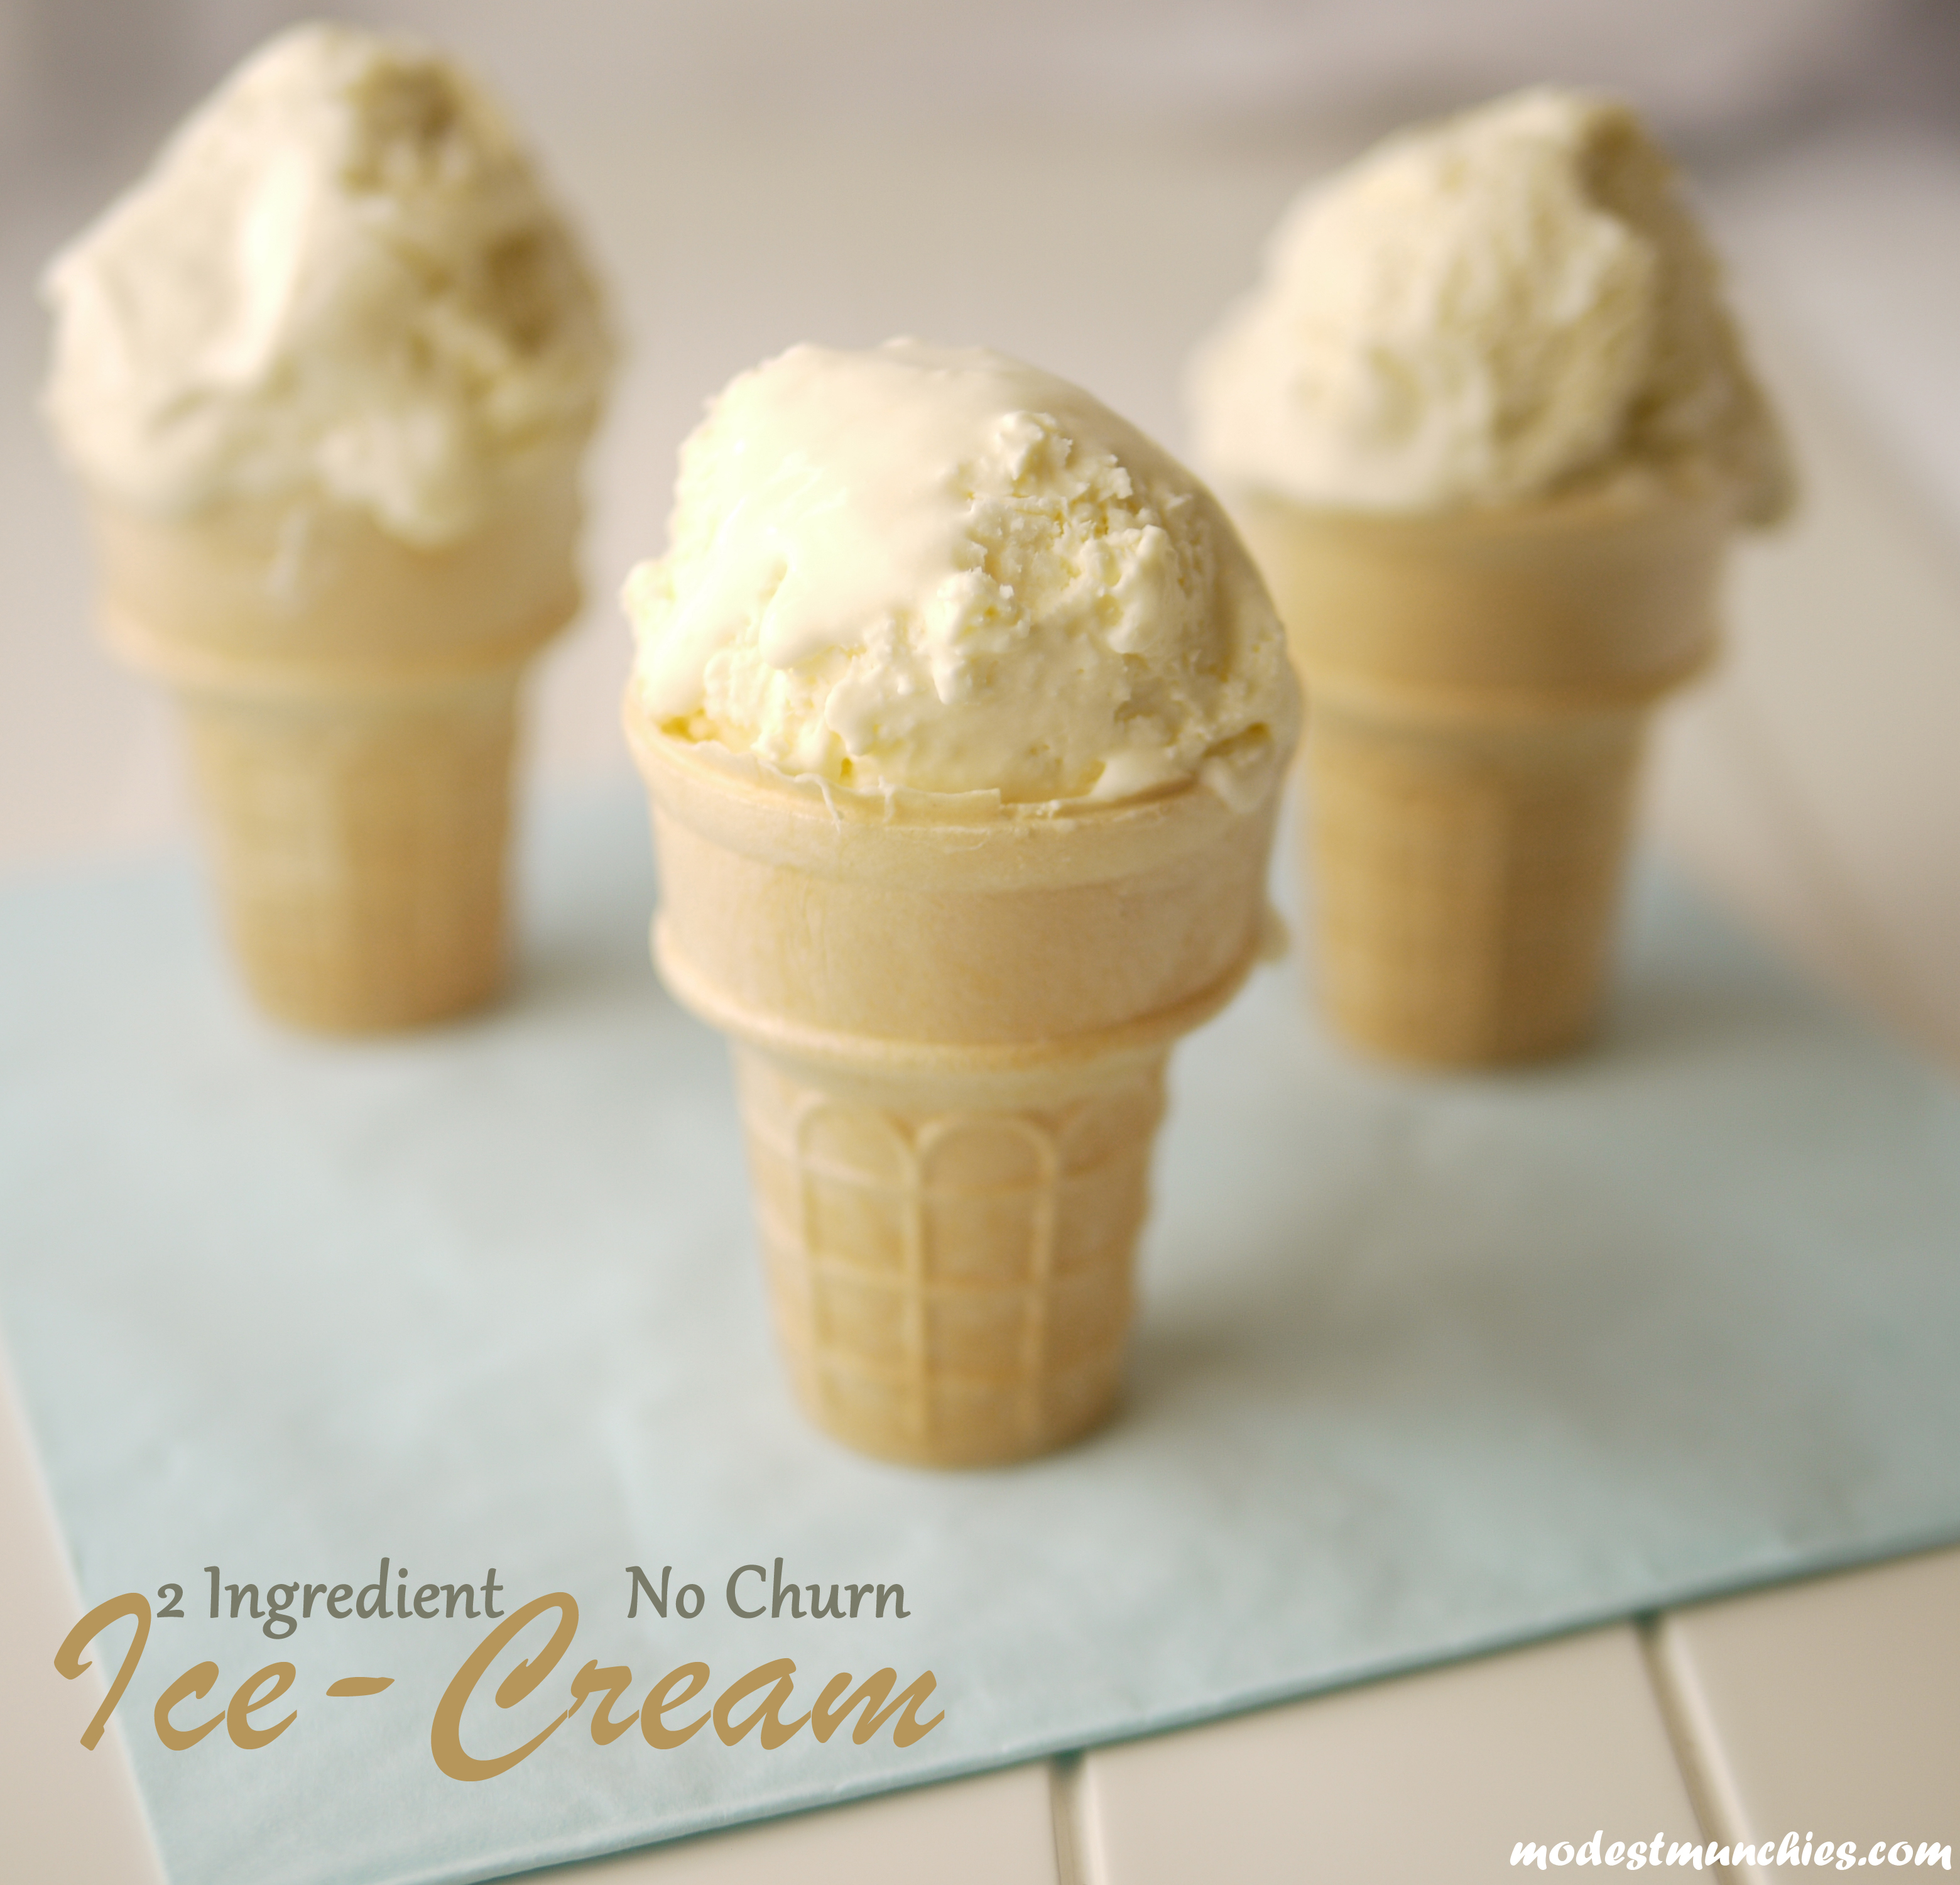 2 Ingredient no churn ice cream